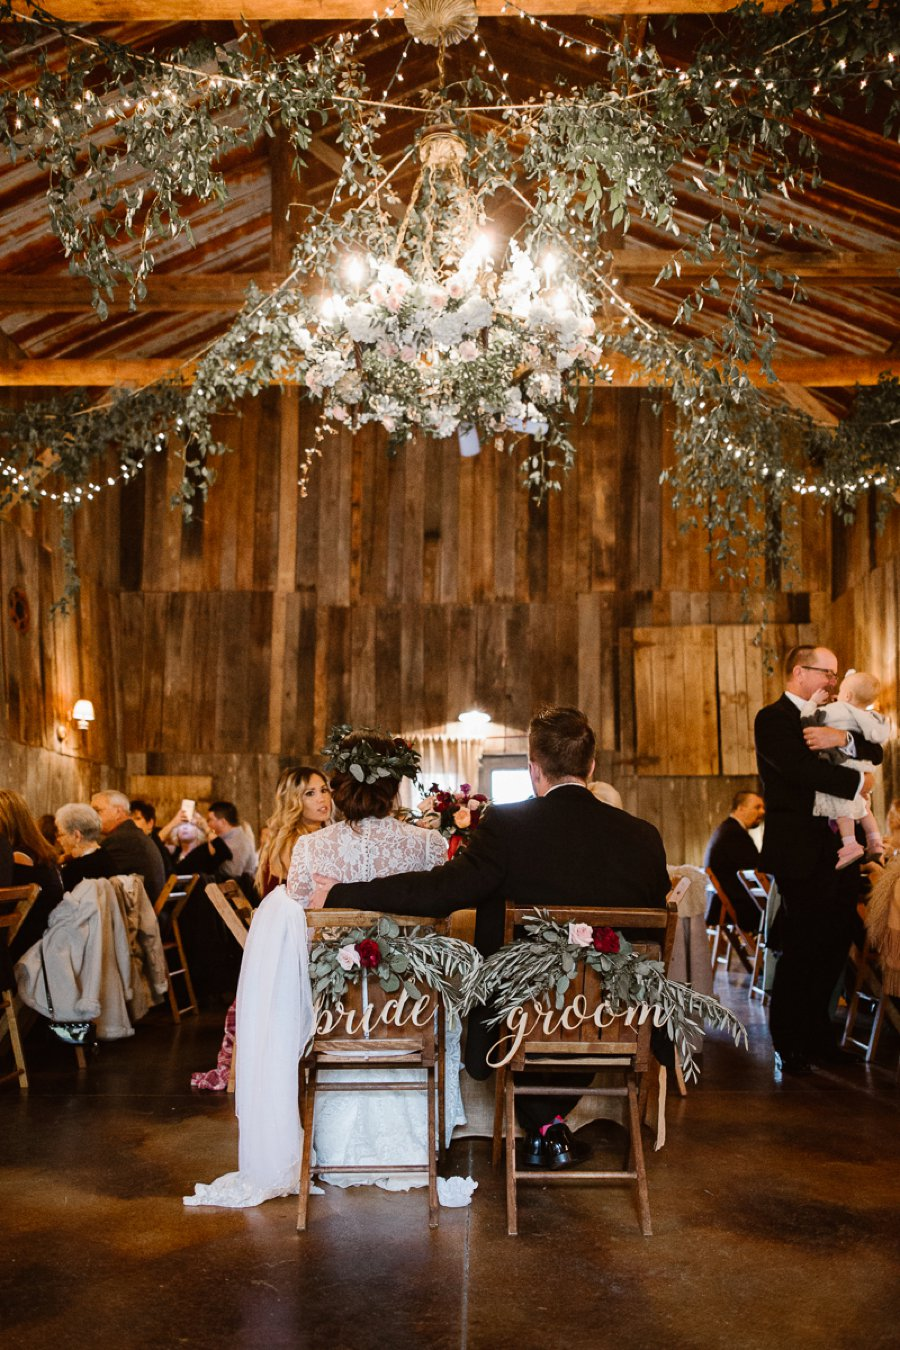 rustic wedding bride and groom chair signs